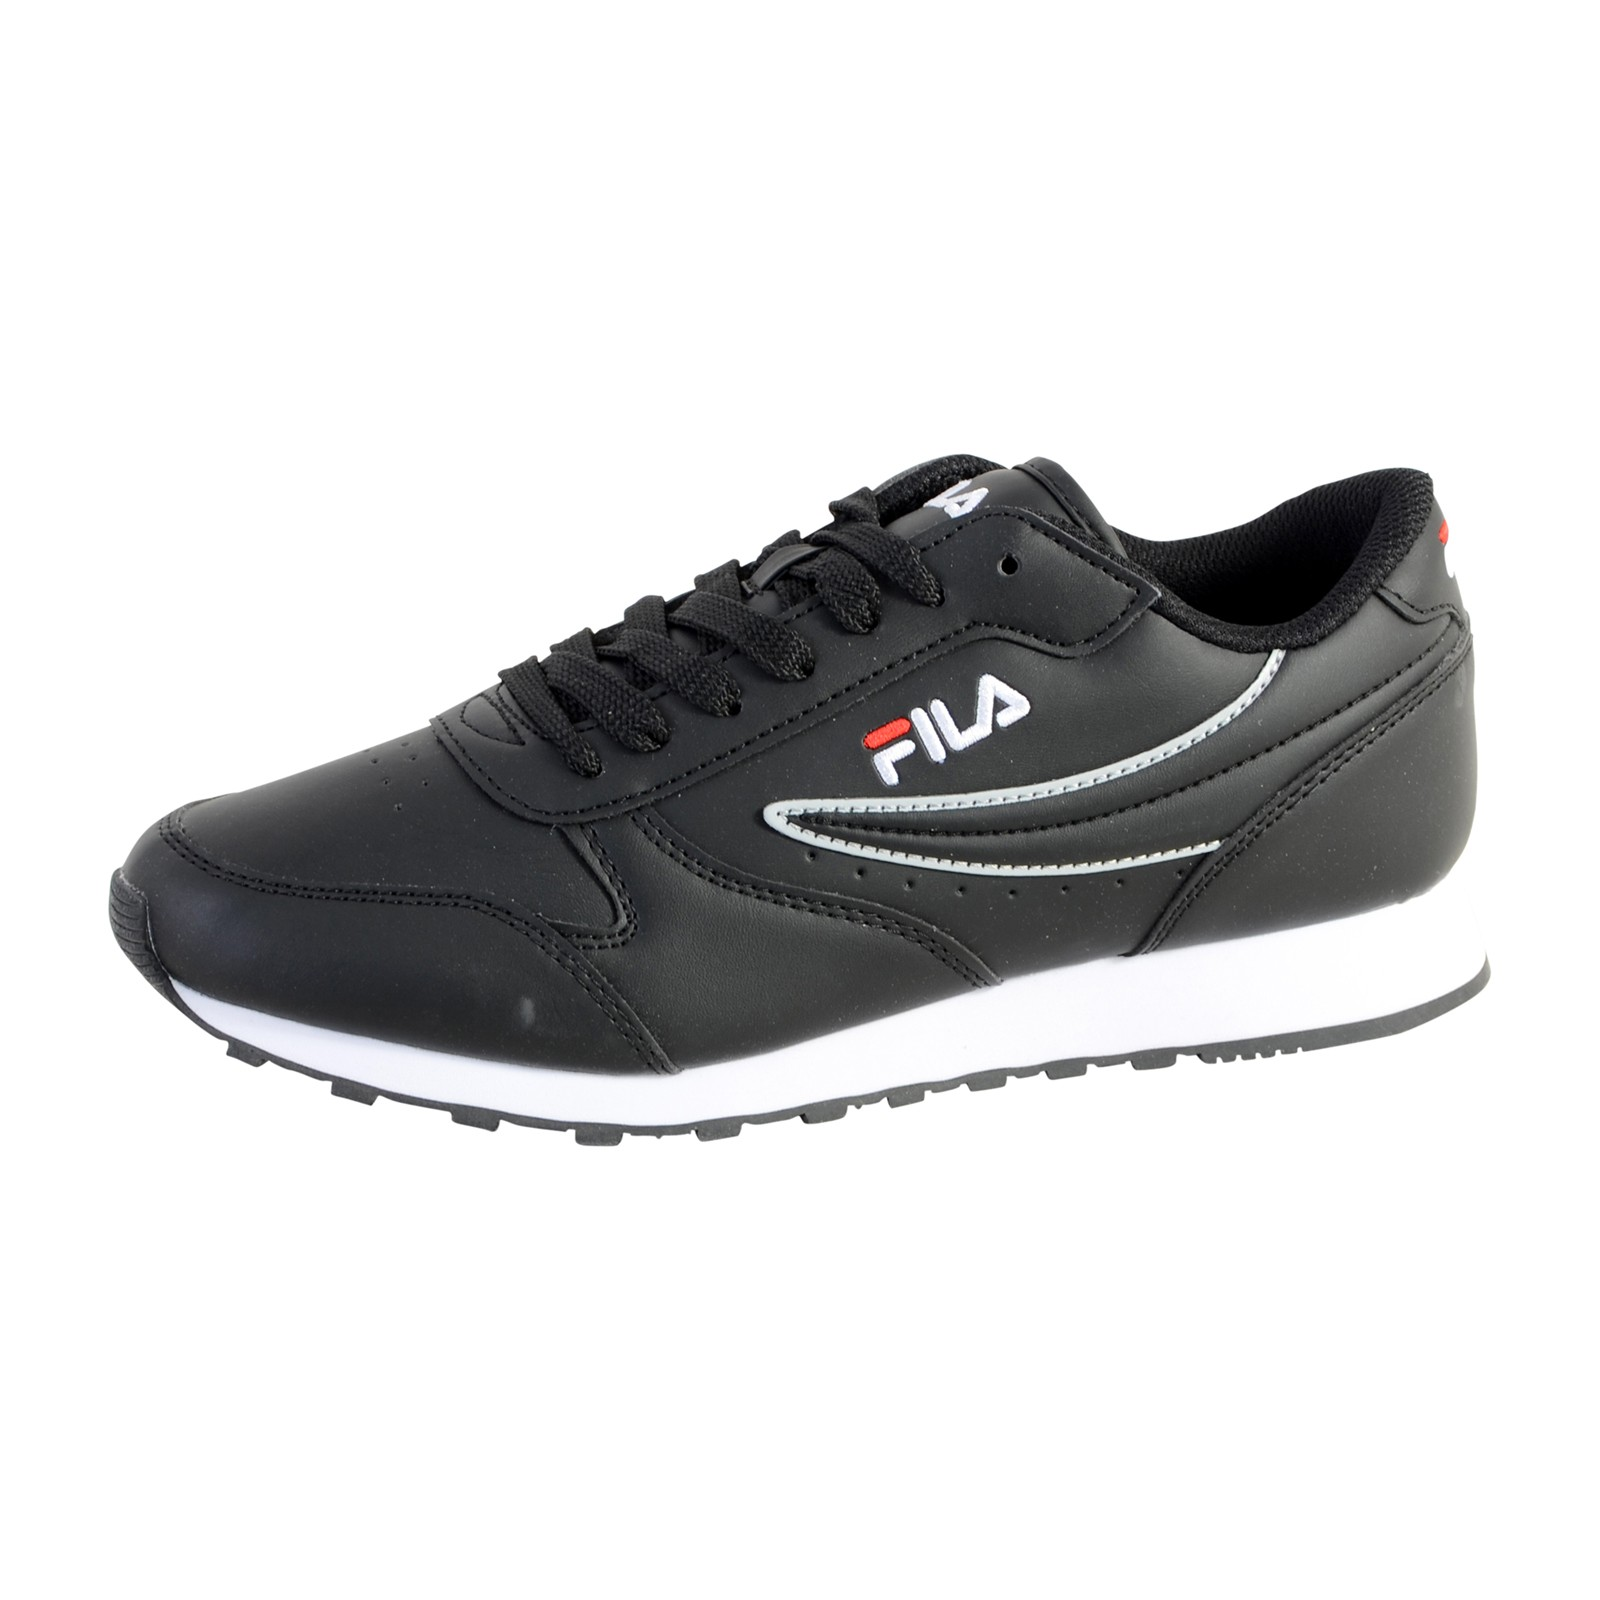 Low Fila Chic Basket Galerie Orbit CoEQxBWrde